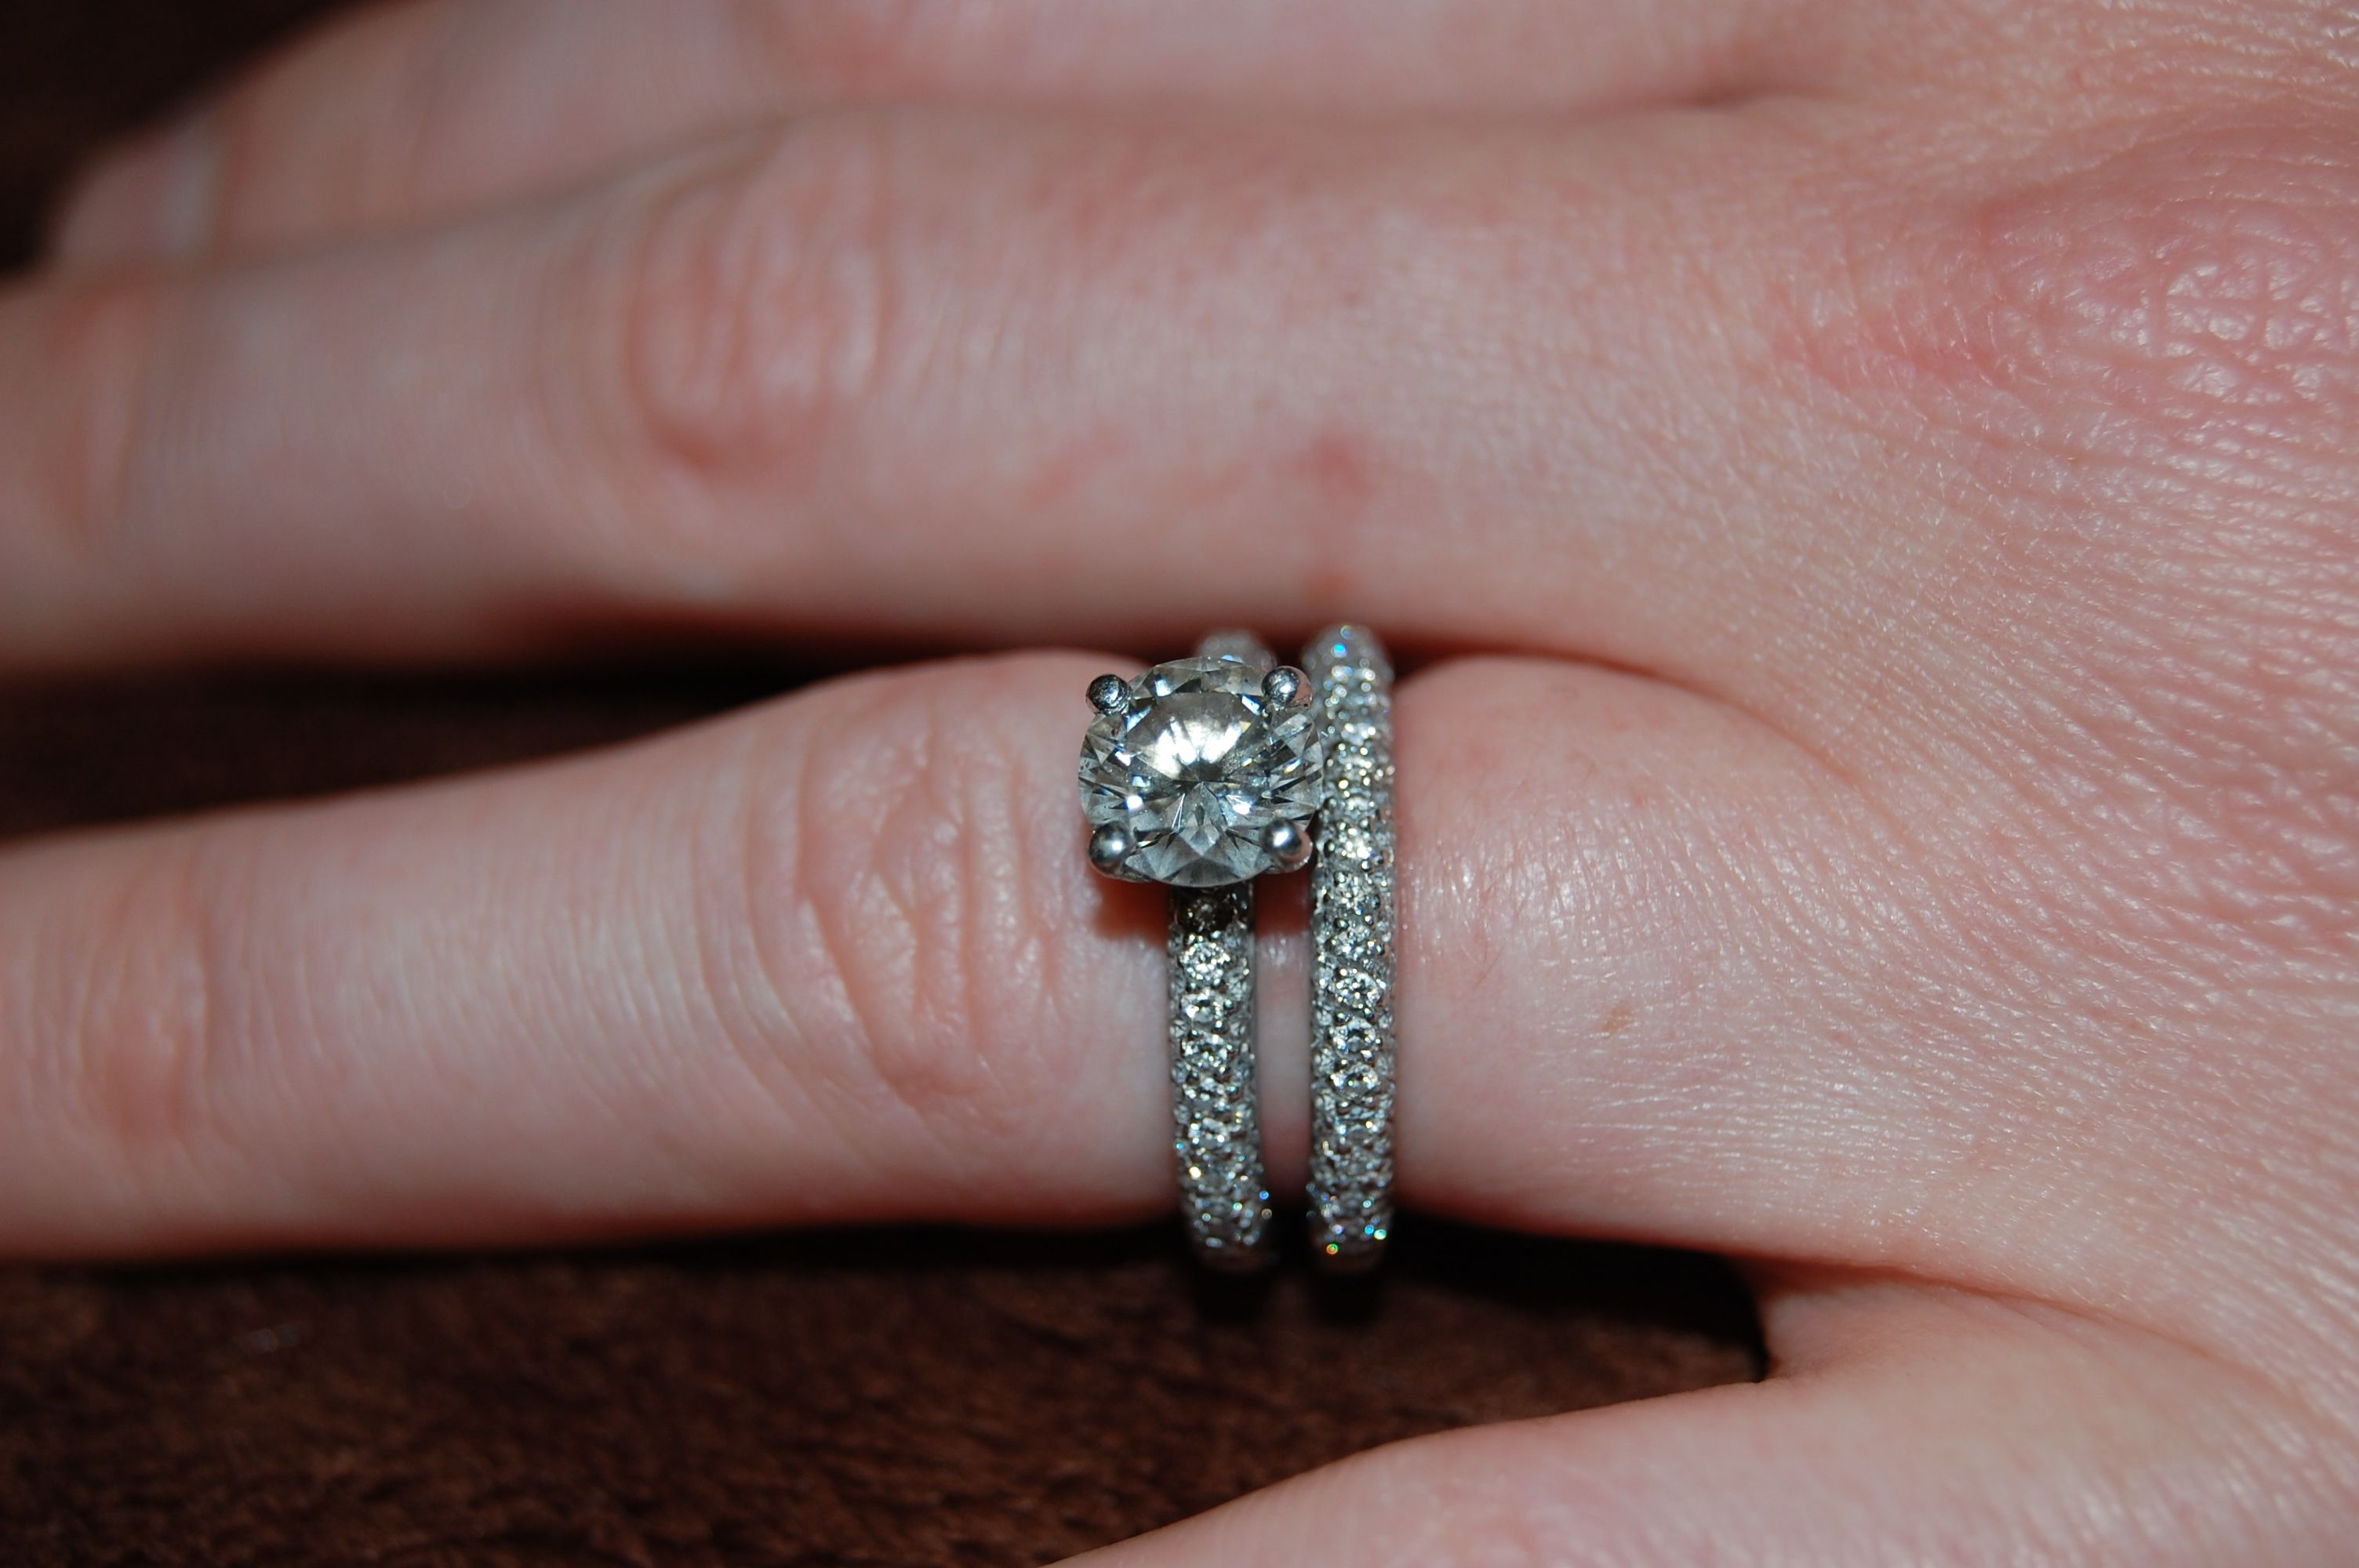 7 Best Rings For Your Wedding In 2017 Round Brilliant Engagement Ring With Micro Pave Band And